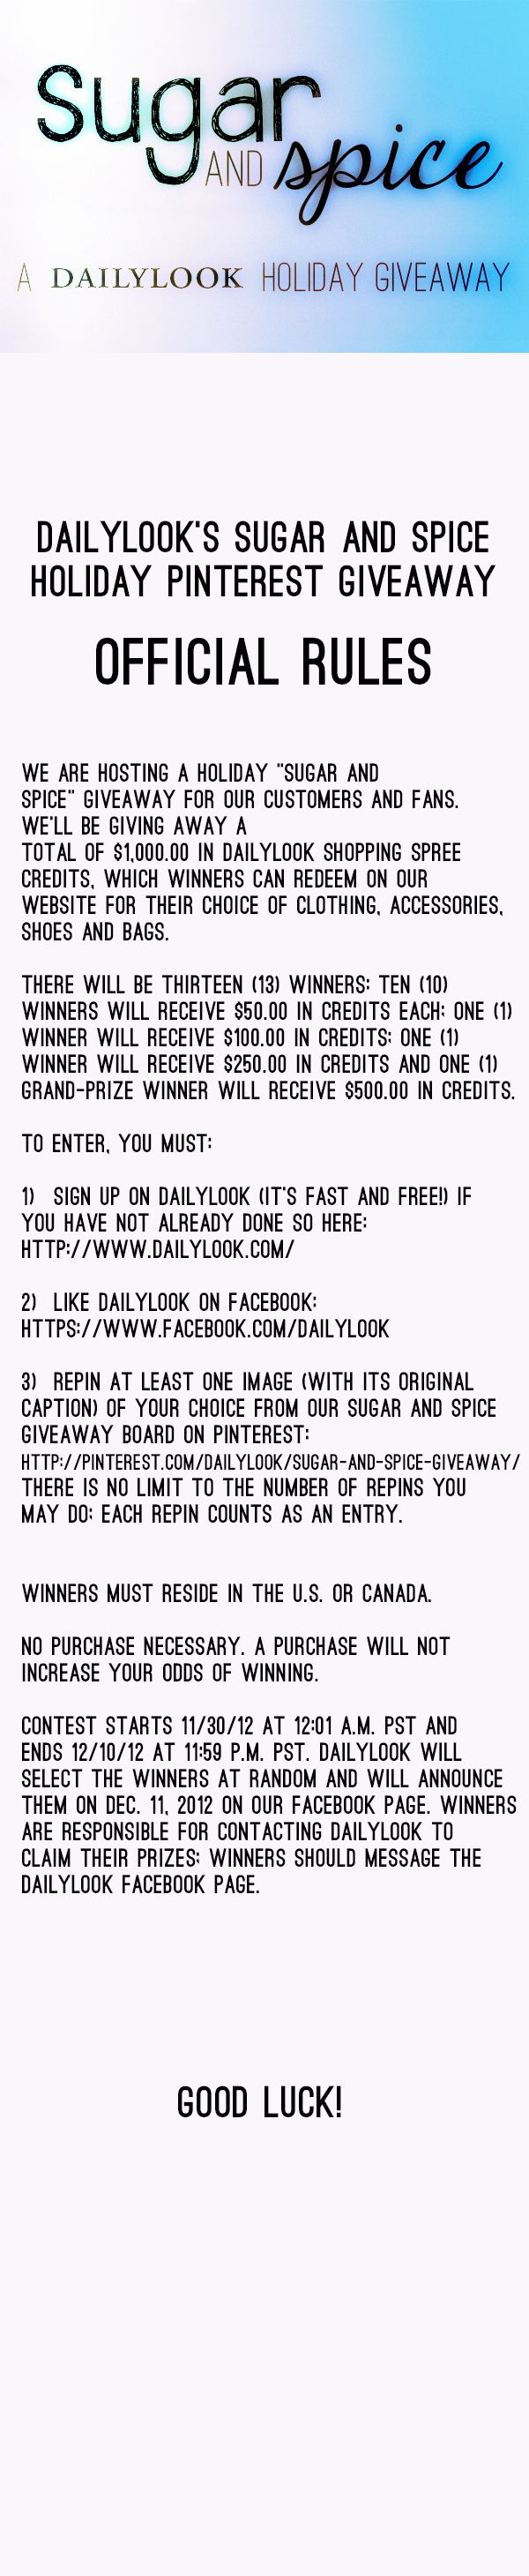 .DailyLook's Sugar and Spice Holiday Giveaway Official Rules. @dailylook #dailylook #dailylooksugarandspice